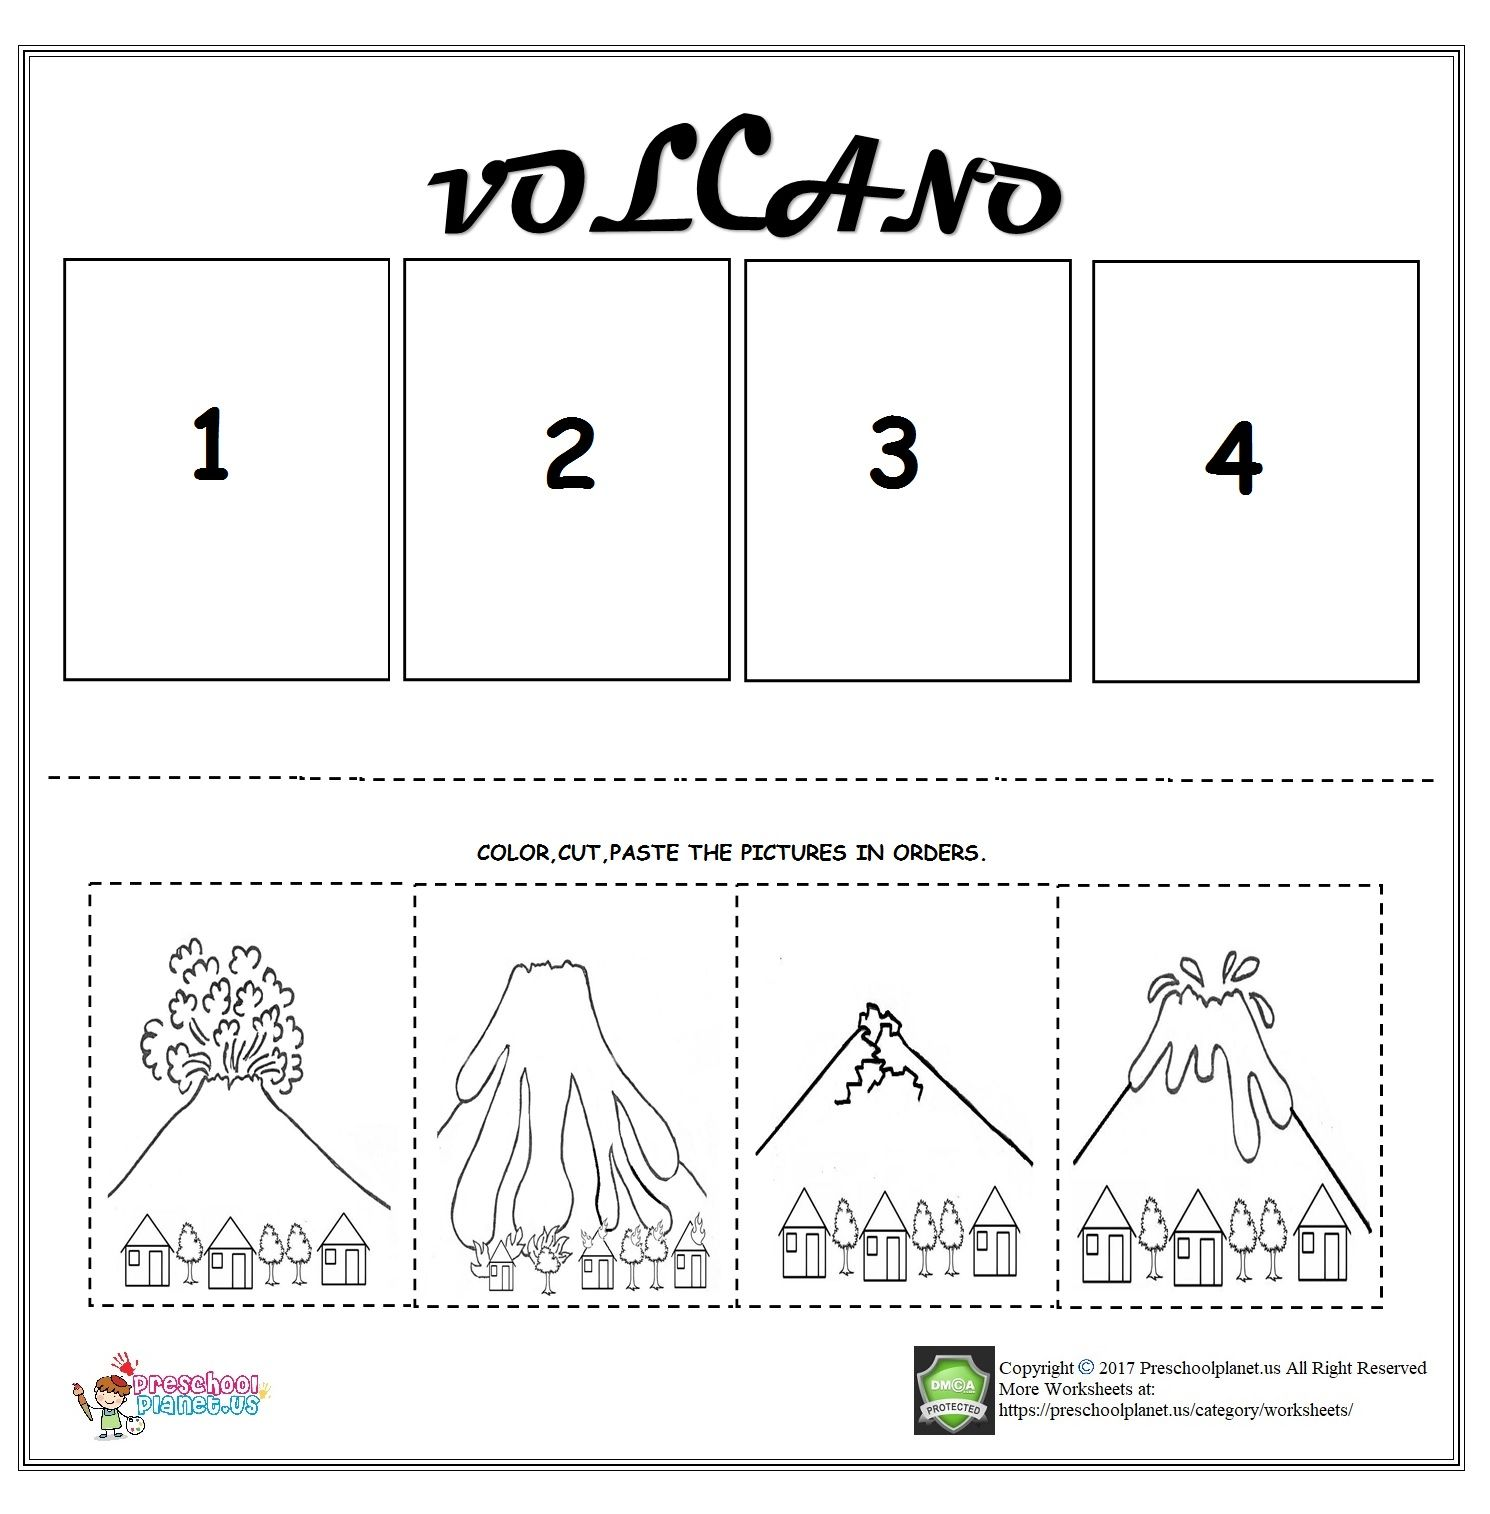 Volcano Sequencing Worksheet For Kids With Images Sequencing